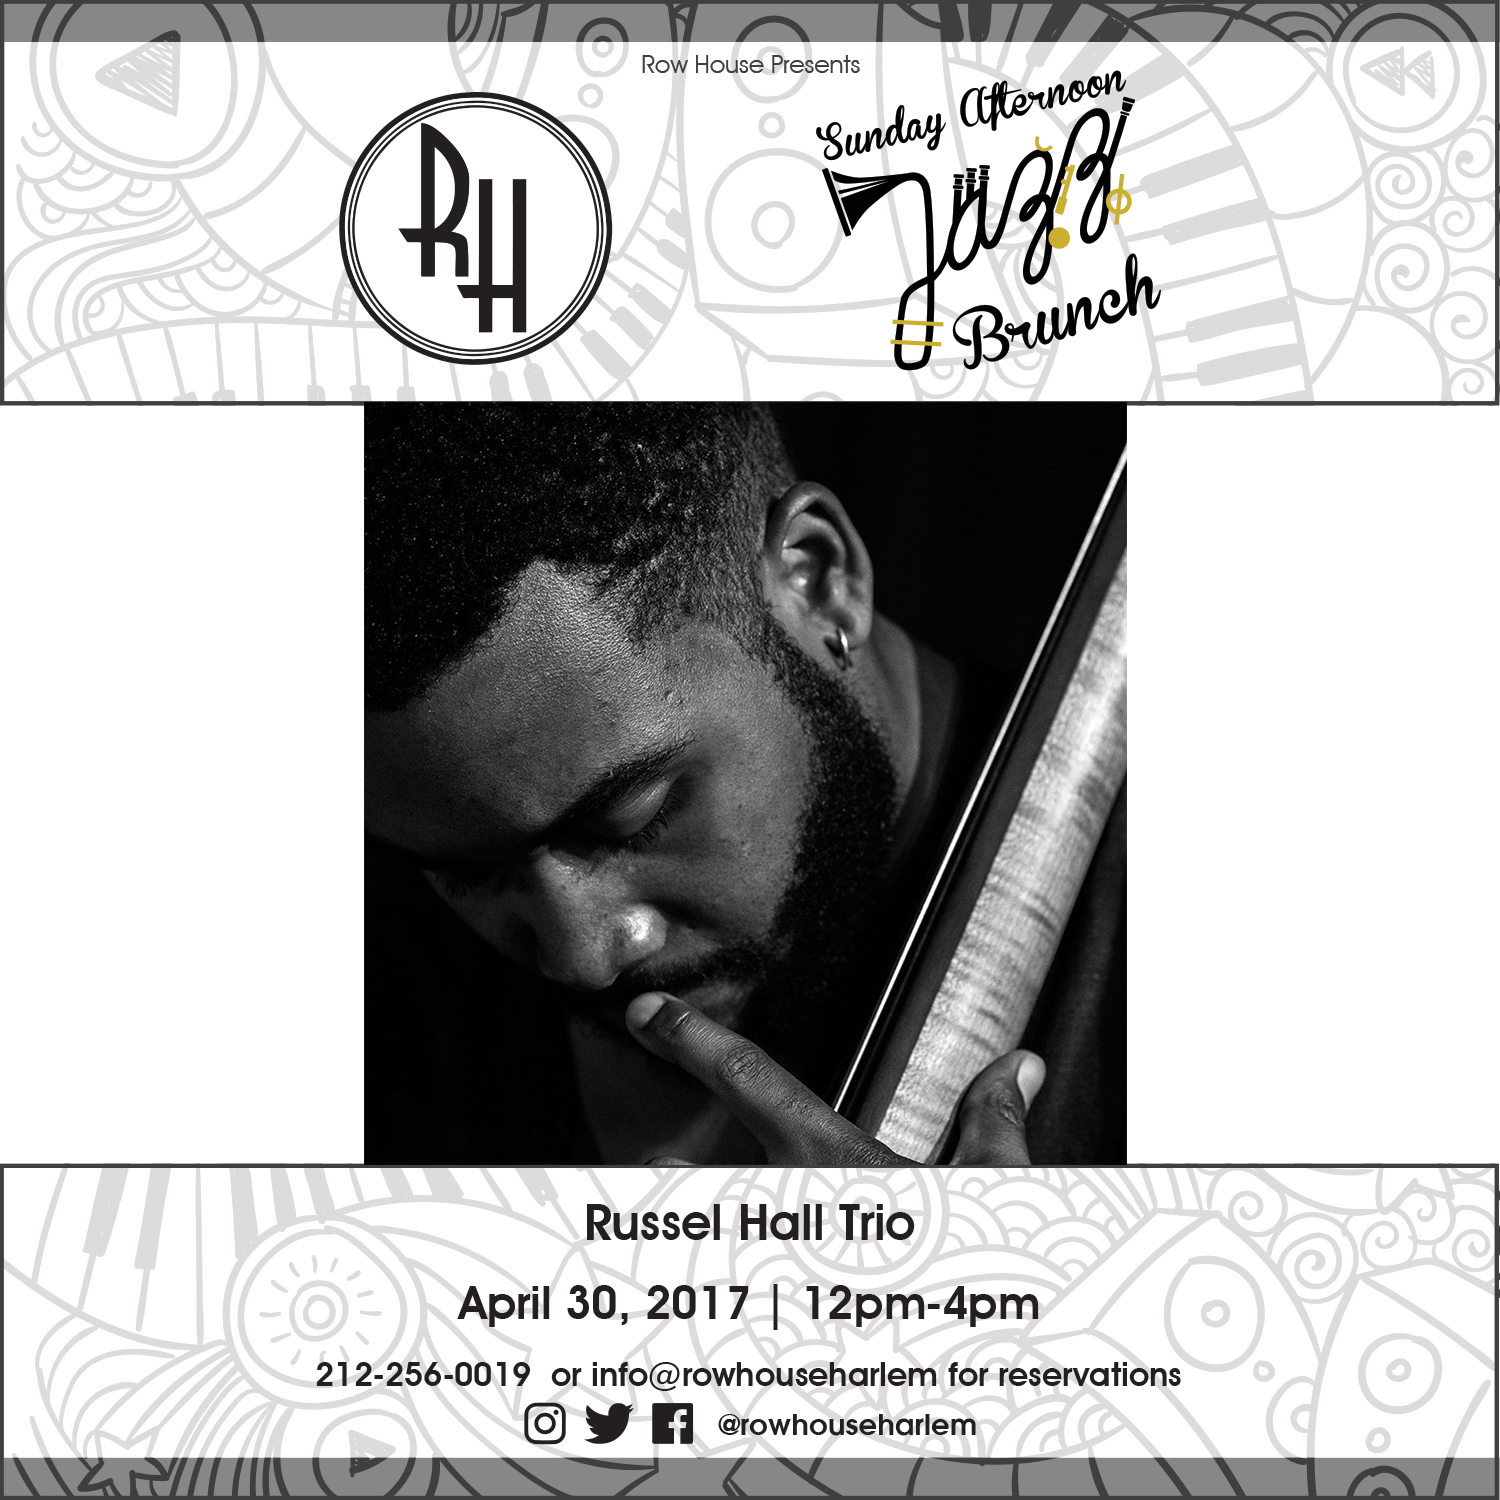 12pm-4pm: Russel Hall Trio